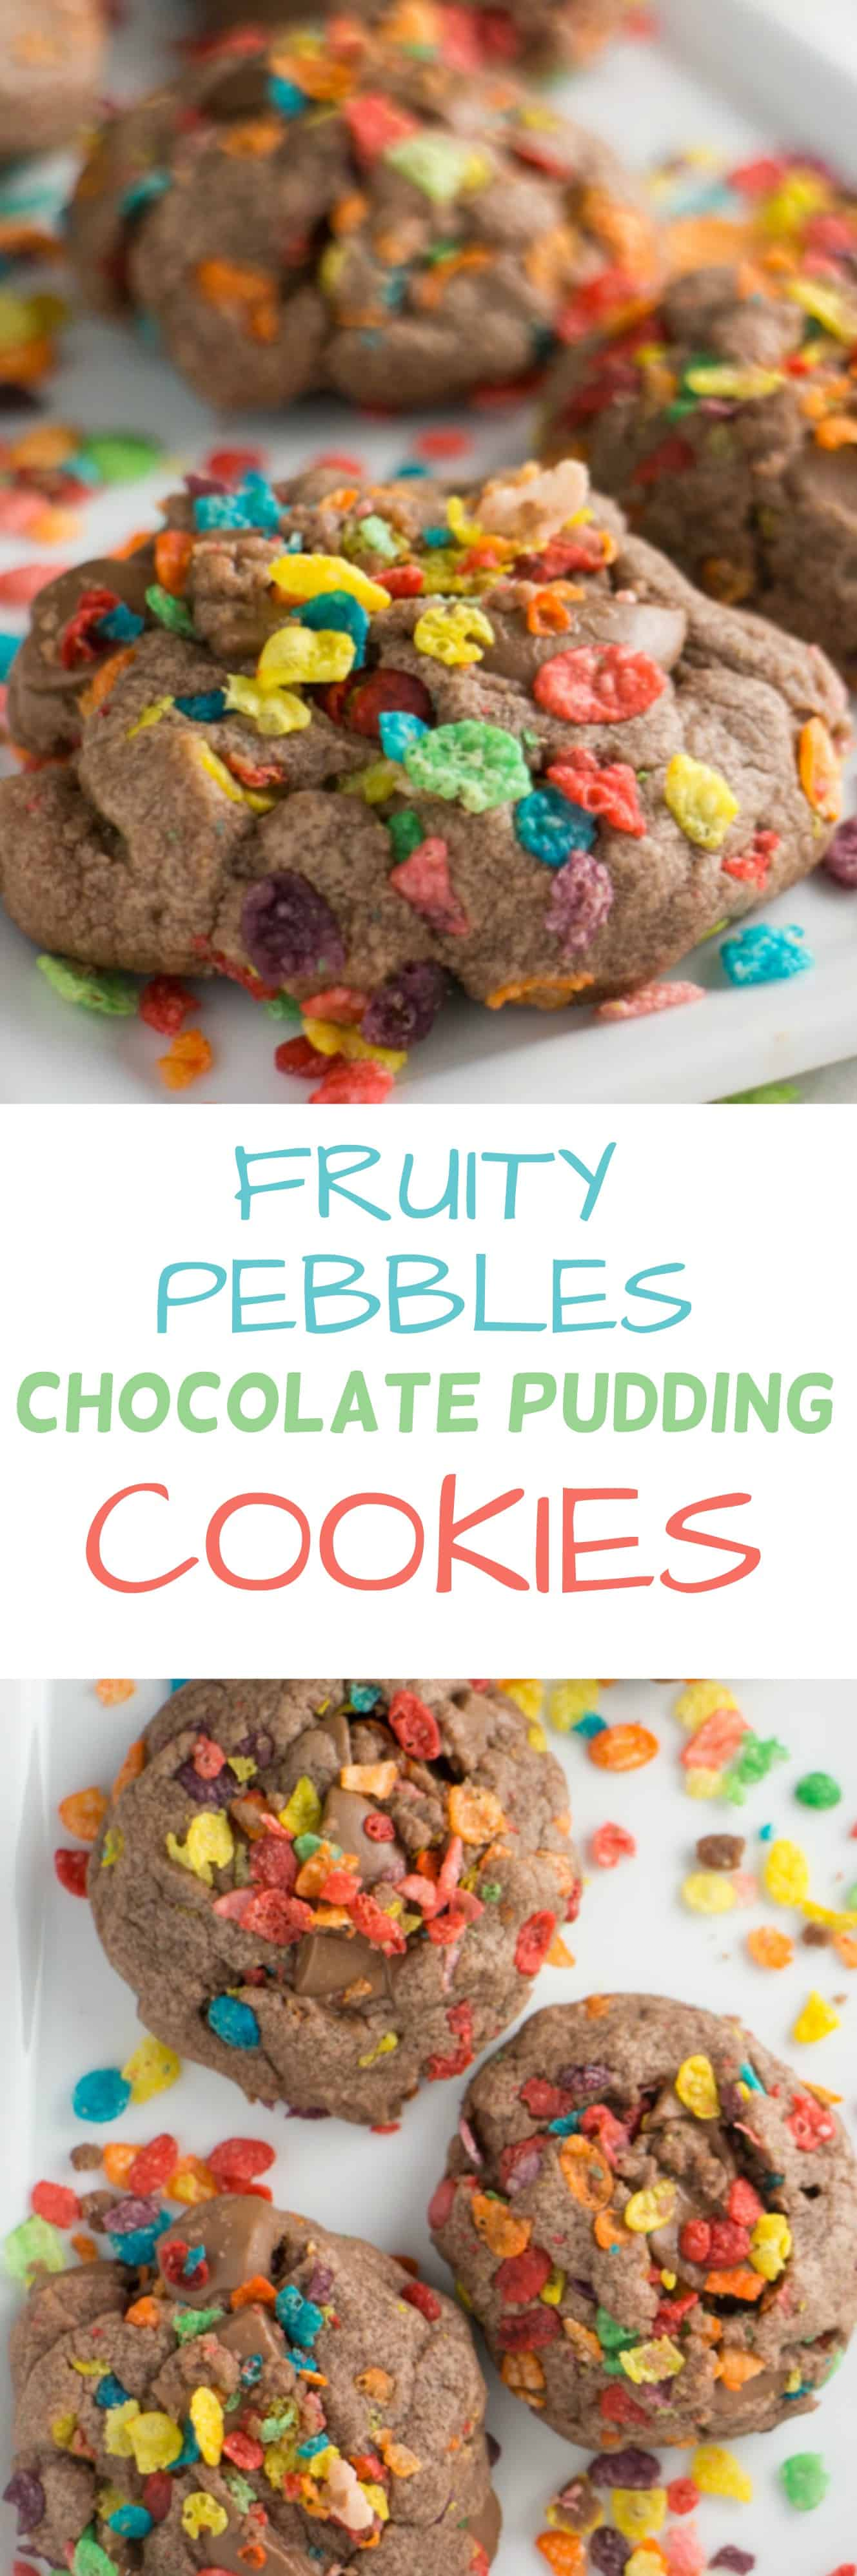 Chocolate Pudding Cookies made with FRUITY PEBBLES are the BEST! This simple and fun recipe is one of my most requested desserts! I love how each bite has chocolate bites and Fruity Pebble cereal in it!